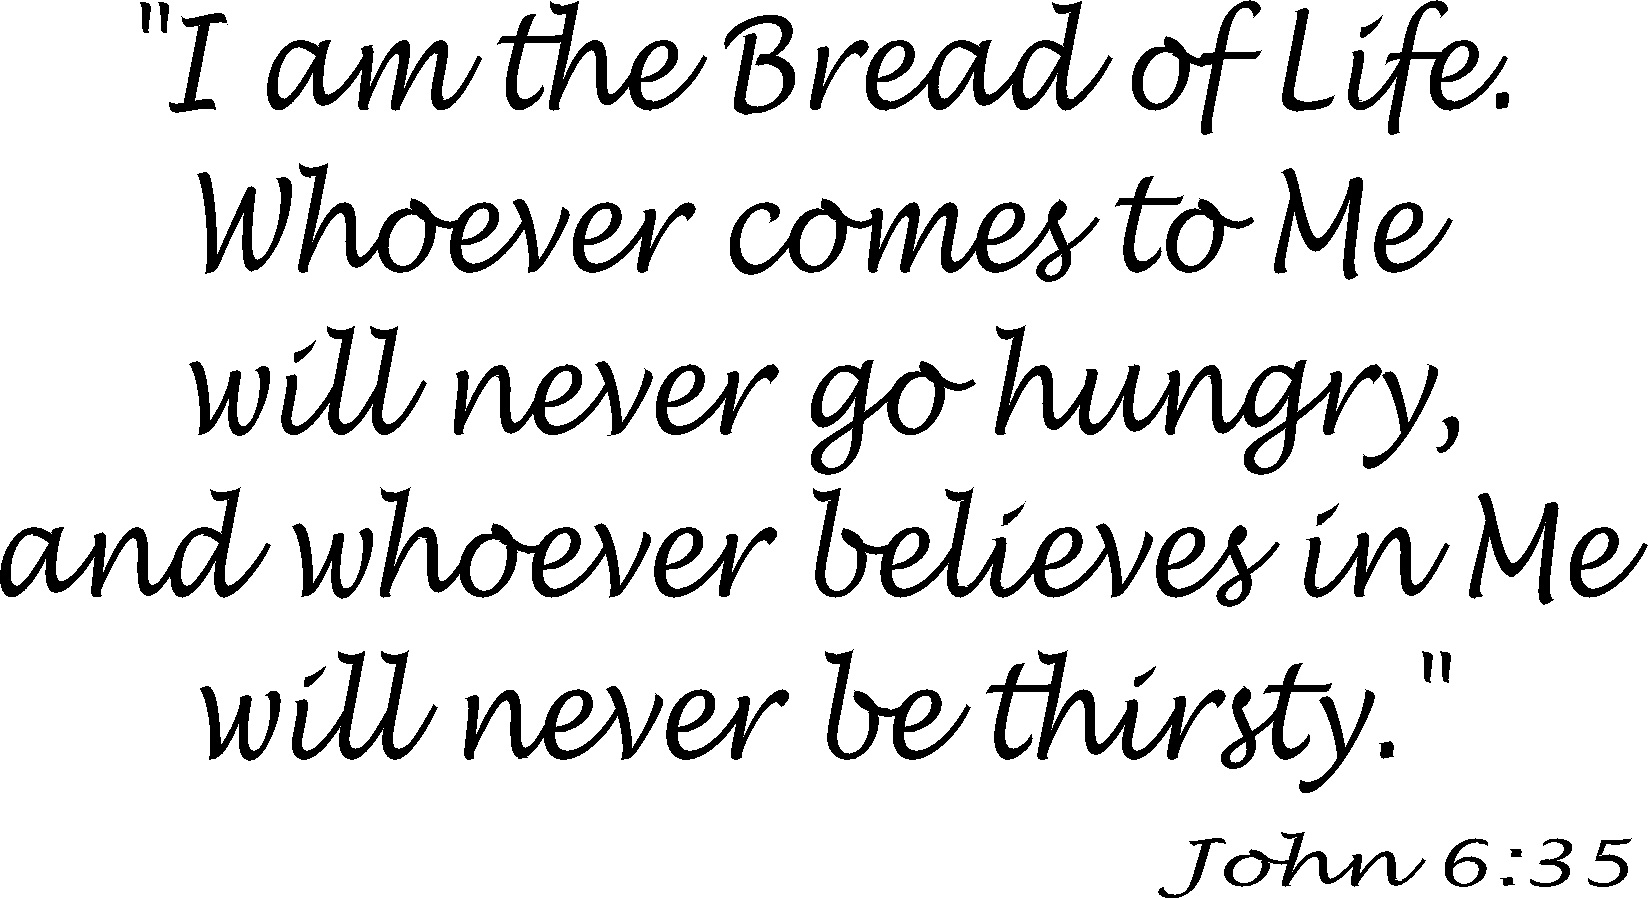 John 6:35 Scripture Wall Decal